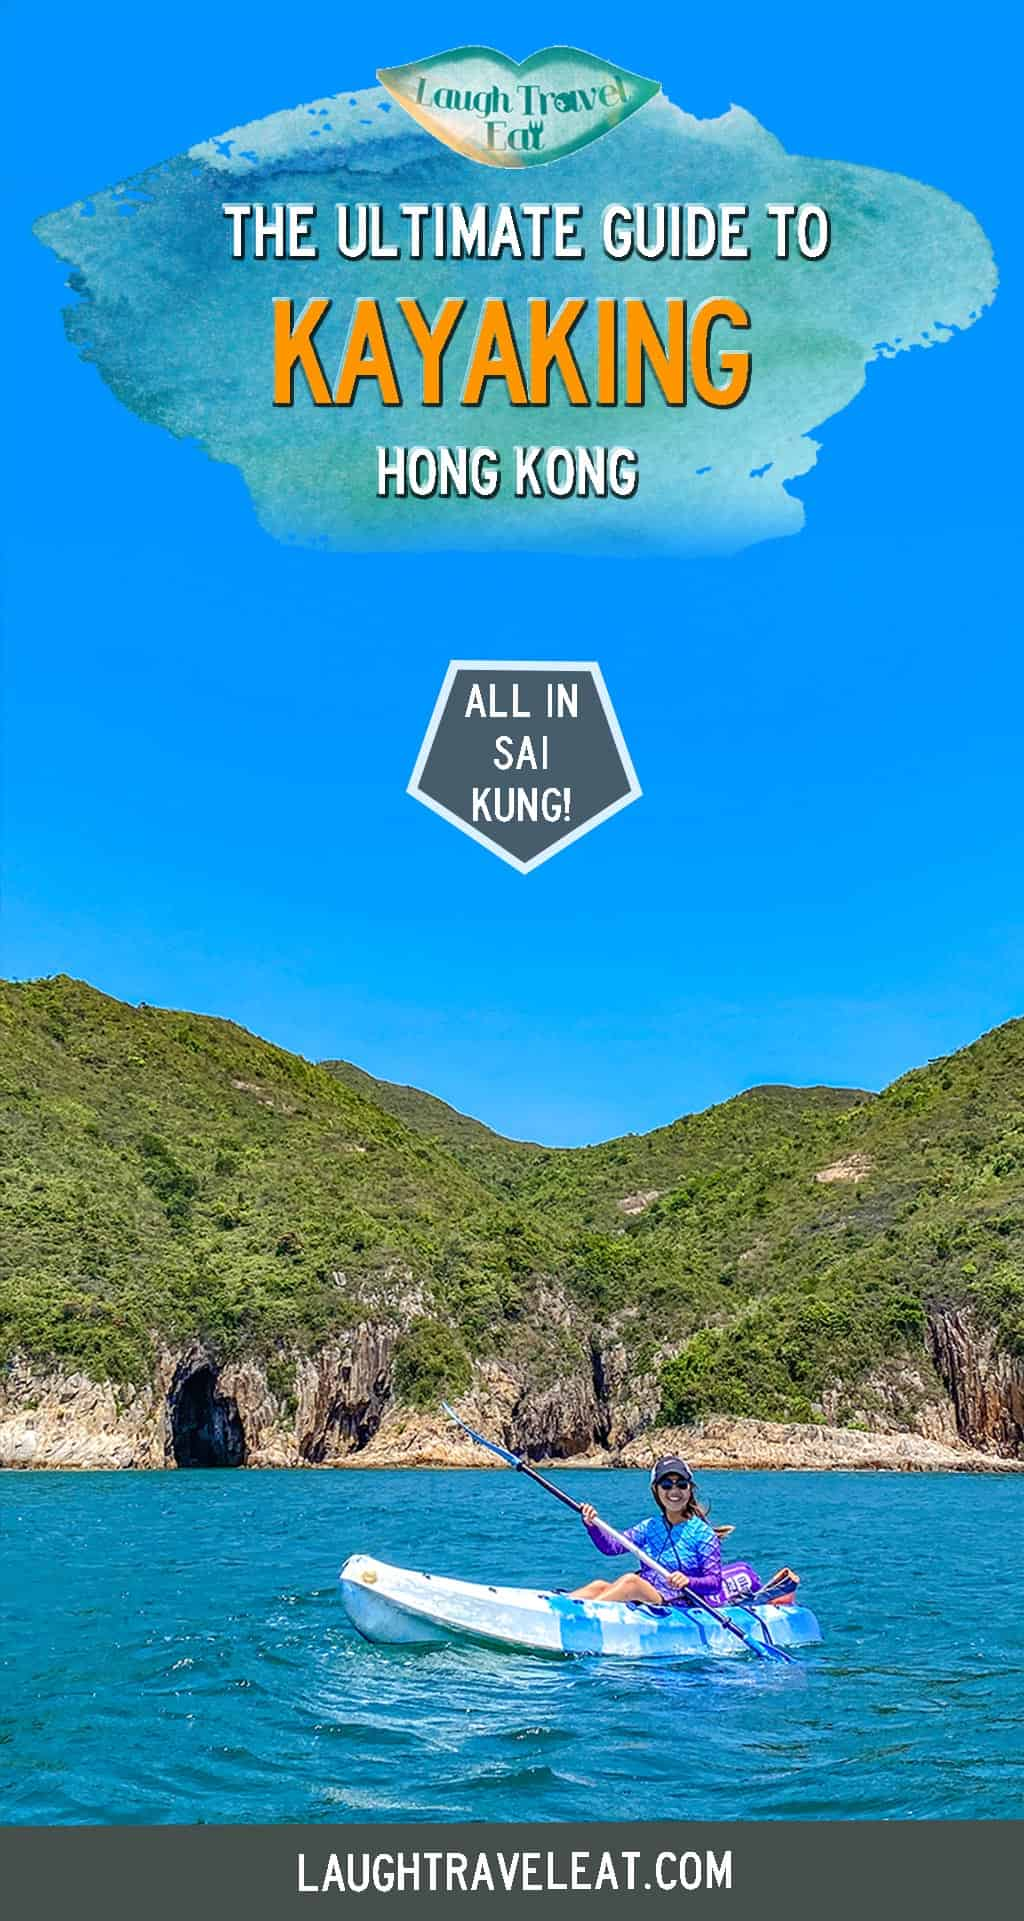 Kayaking in Sai Kung is one of the best summer activities to do in Hong Kong. Believe it or not, this concrete jungle has a pretty amazing coastline hidden and Sai Kung is one of the best. As we have a long summer here from May until basically October, it's too hot for hiking so most people turn to kayaking. Here's where to go, how to rent, and what to beware of #HongKong #SaiKung #Kayaking